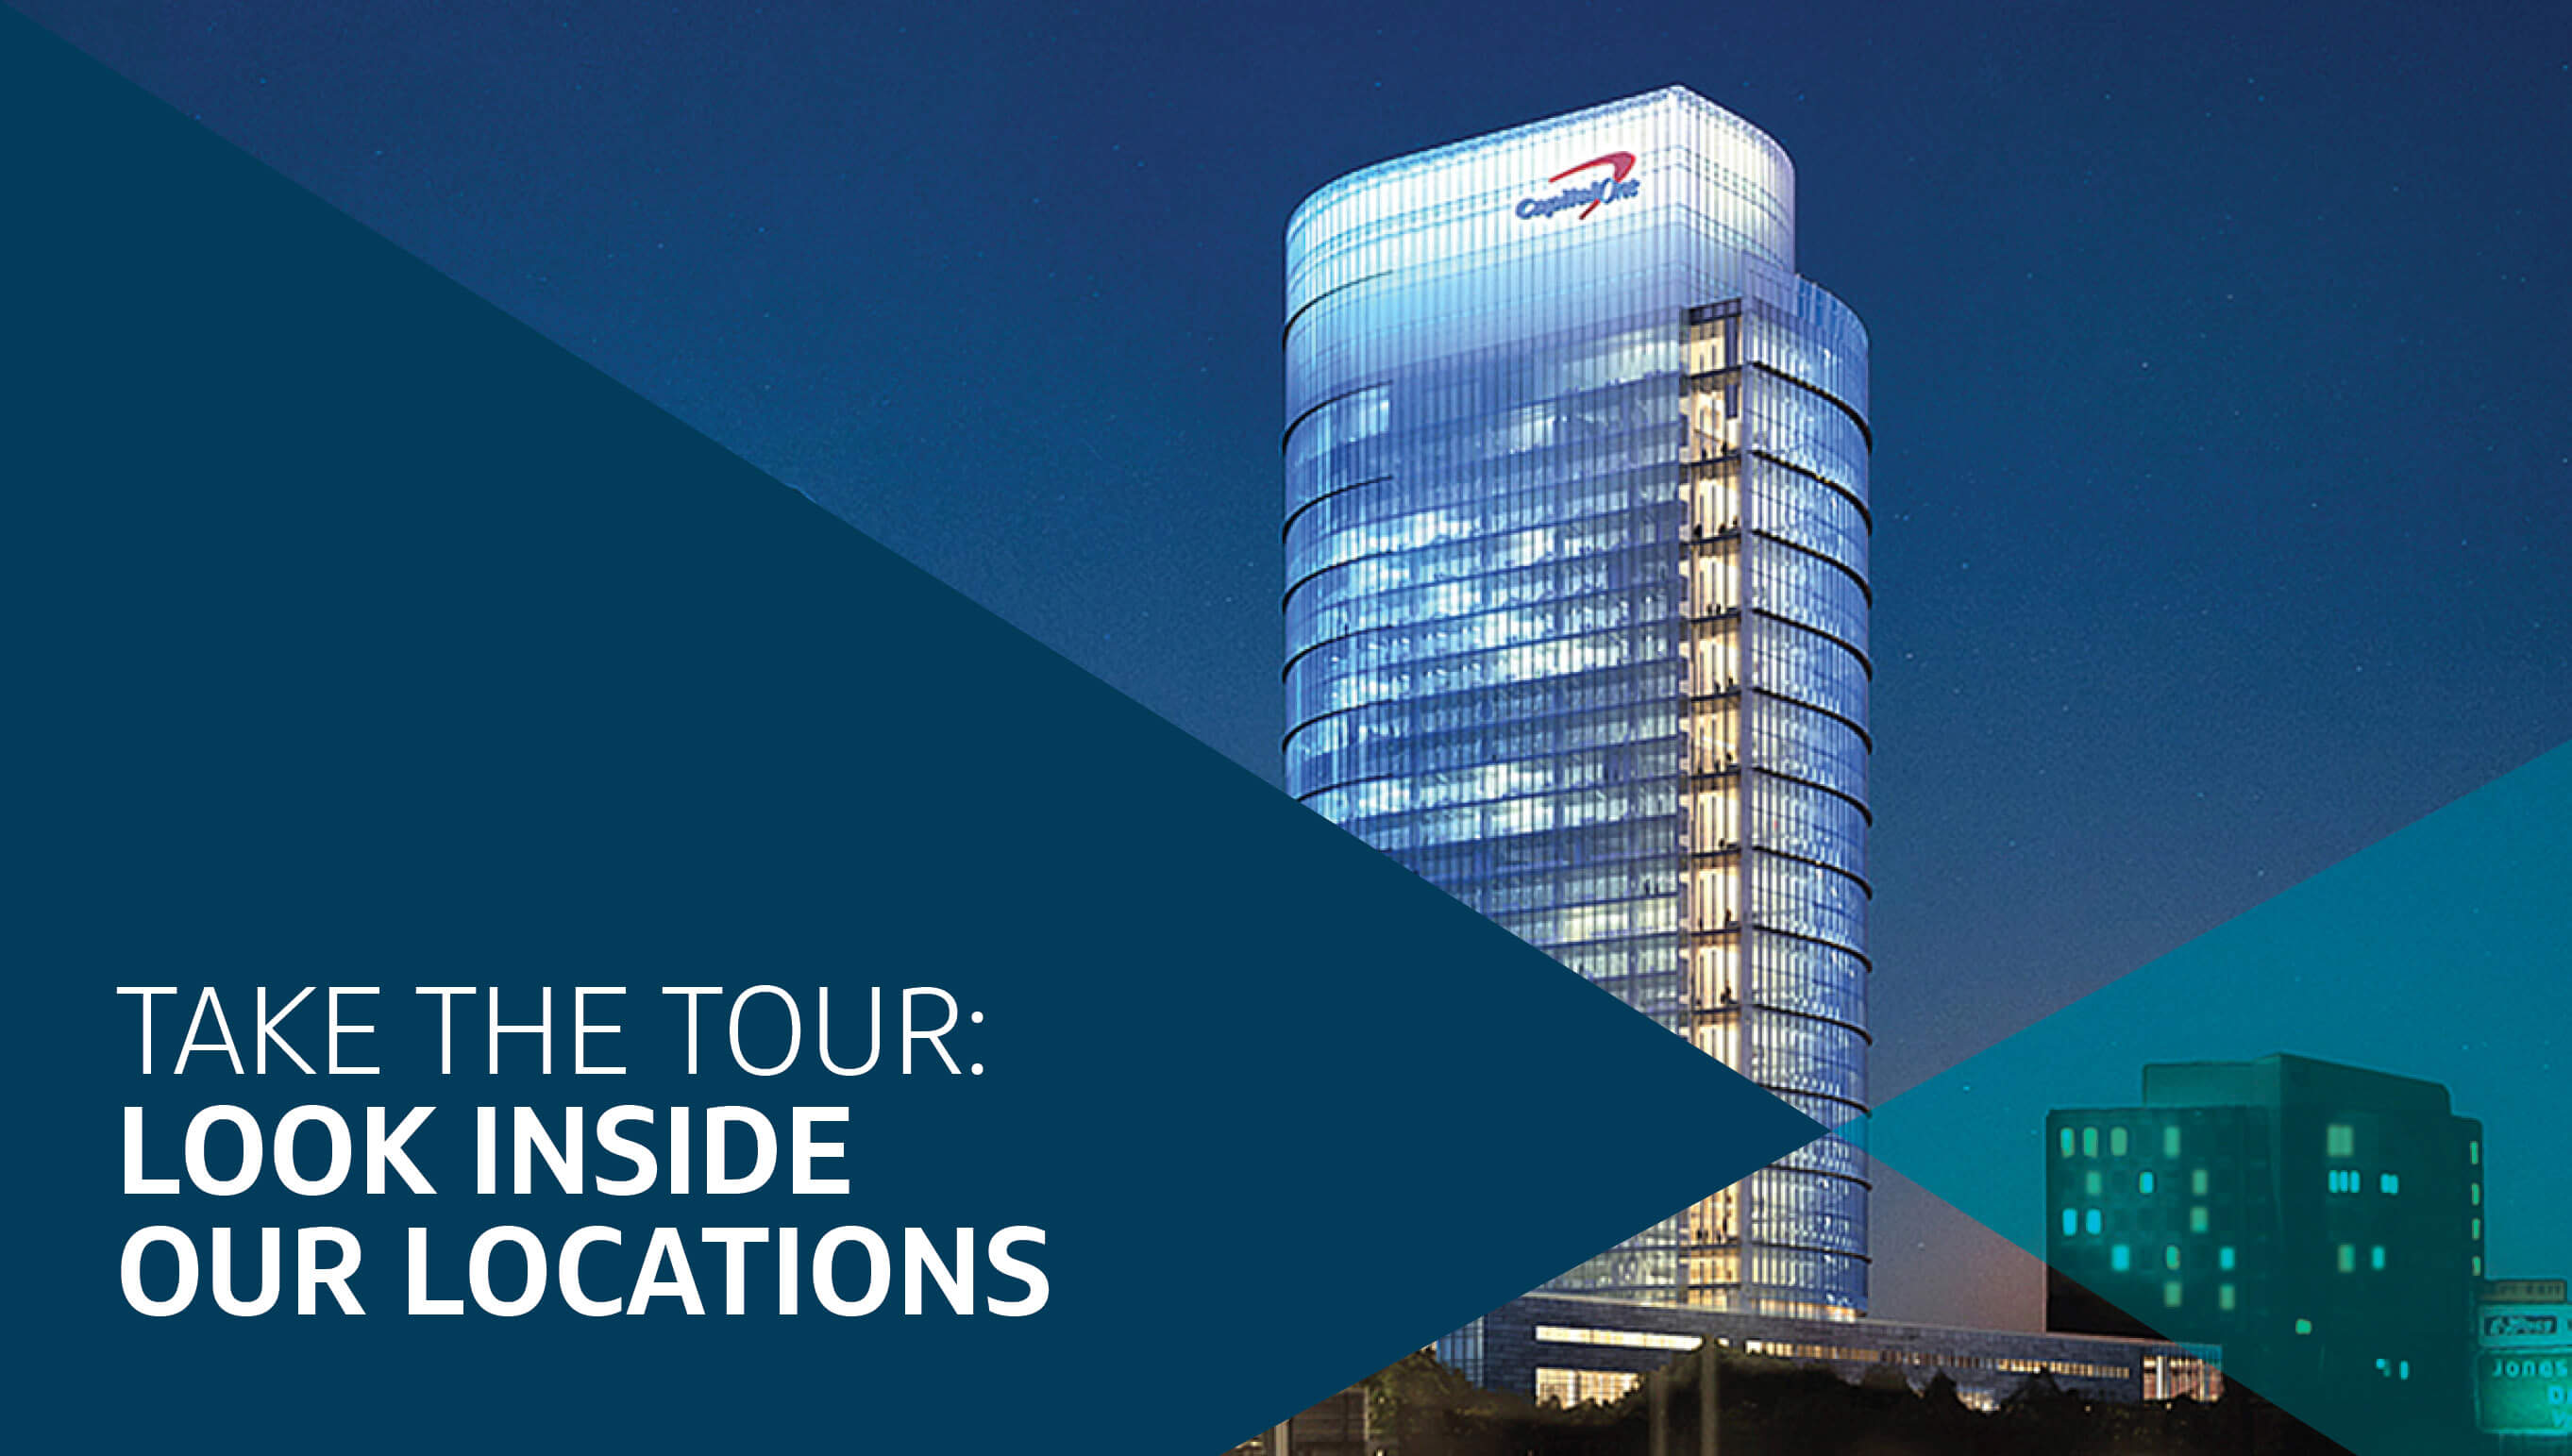 Take the tour: Look inside our locations